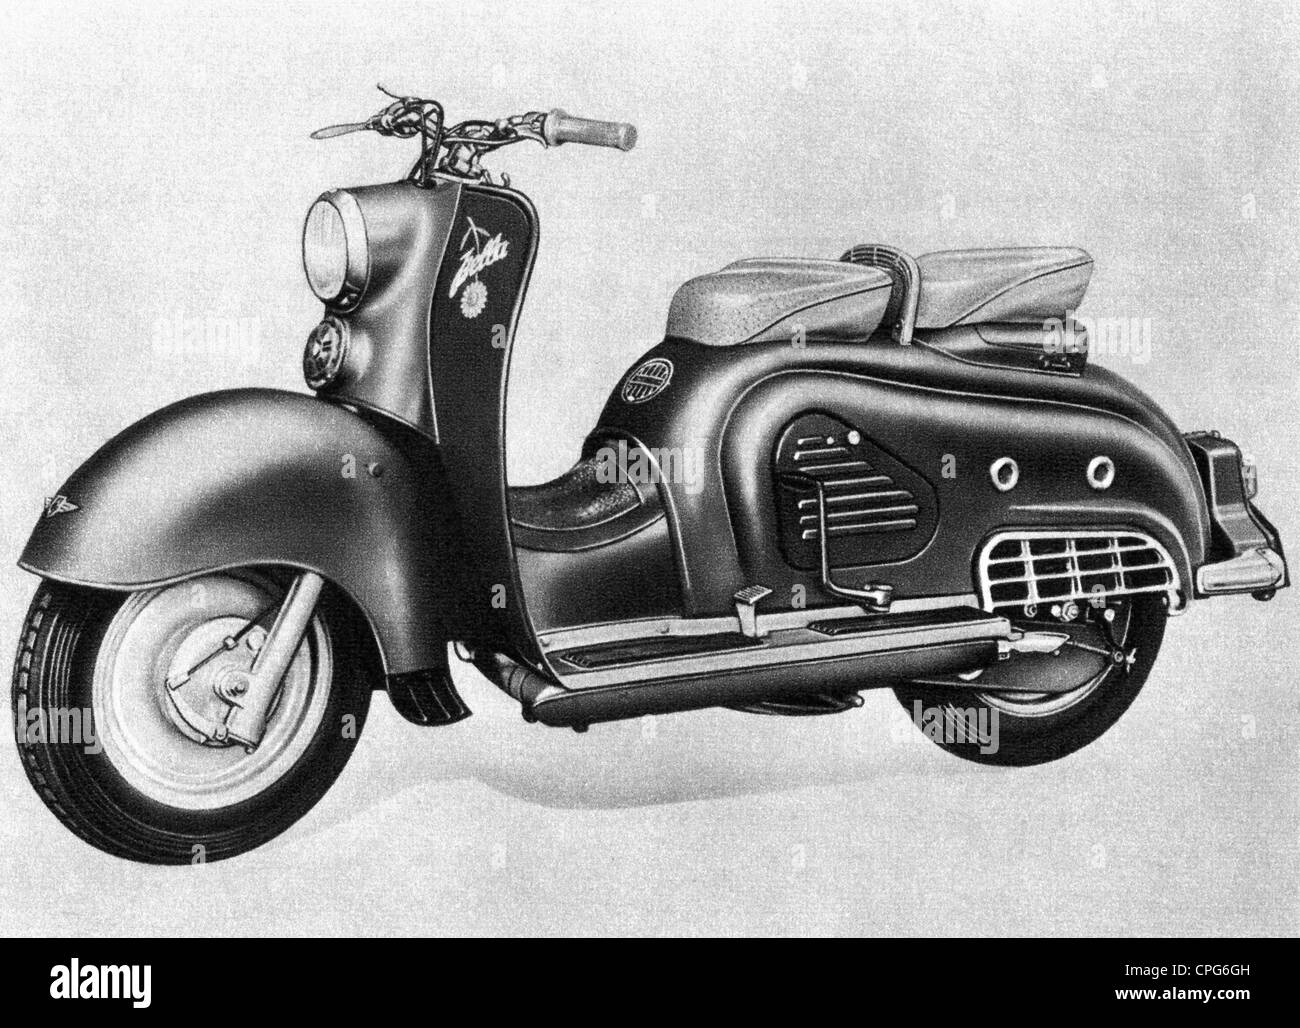 Transporte / Transporte, motocicleta, Bella Zuendapp motor scooter 1954, Additional-Rights-Clearences-NA Imagen De Stock